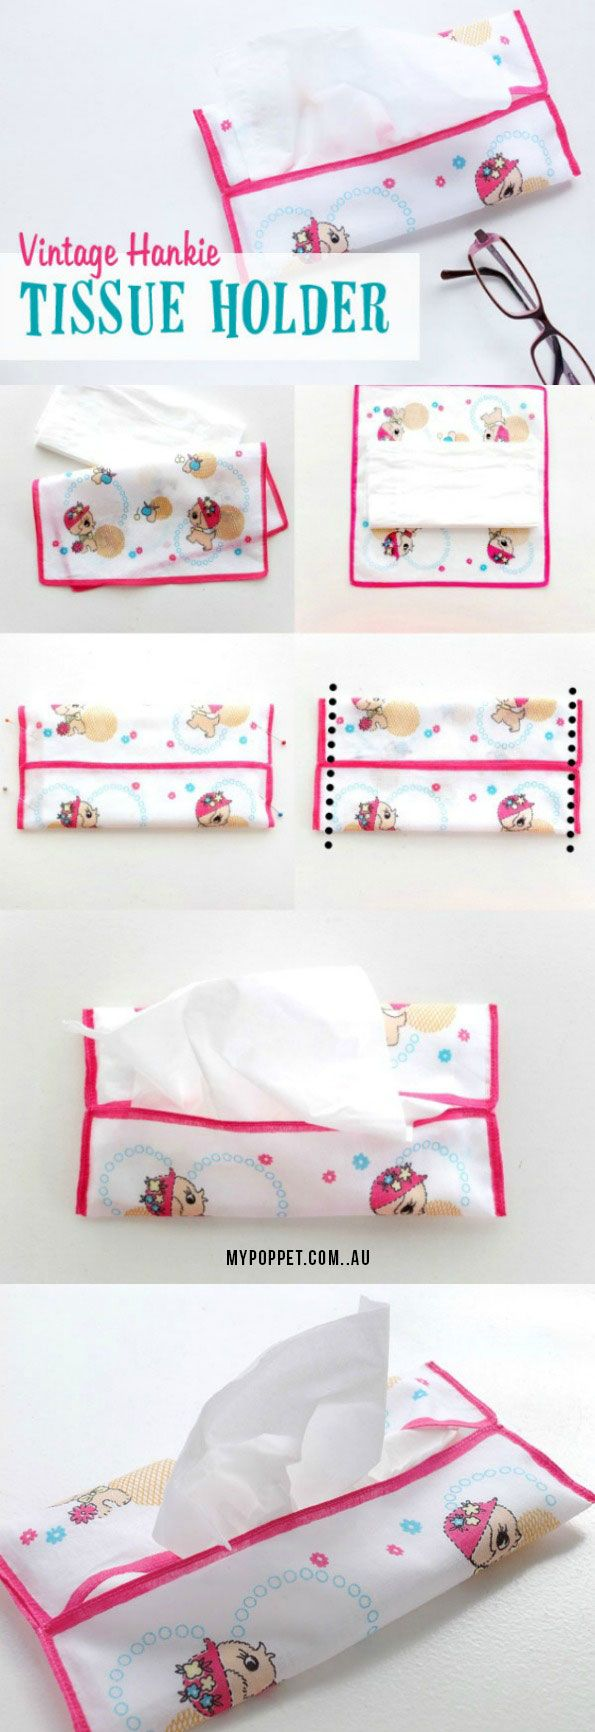 How To: Vintage Hankie Tissue Holder - perfect for travel